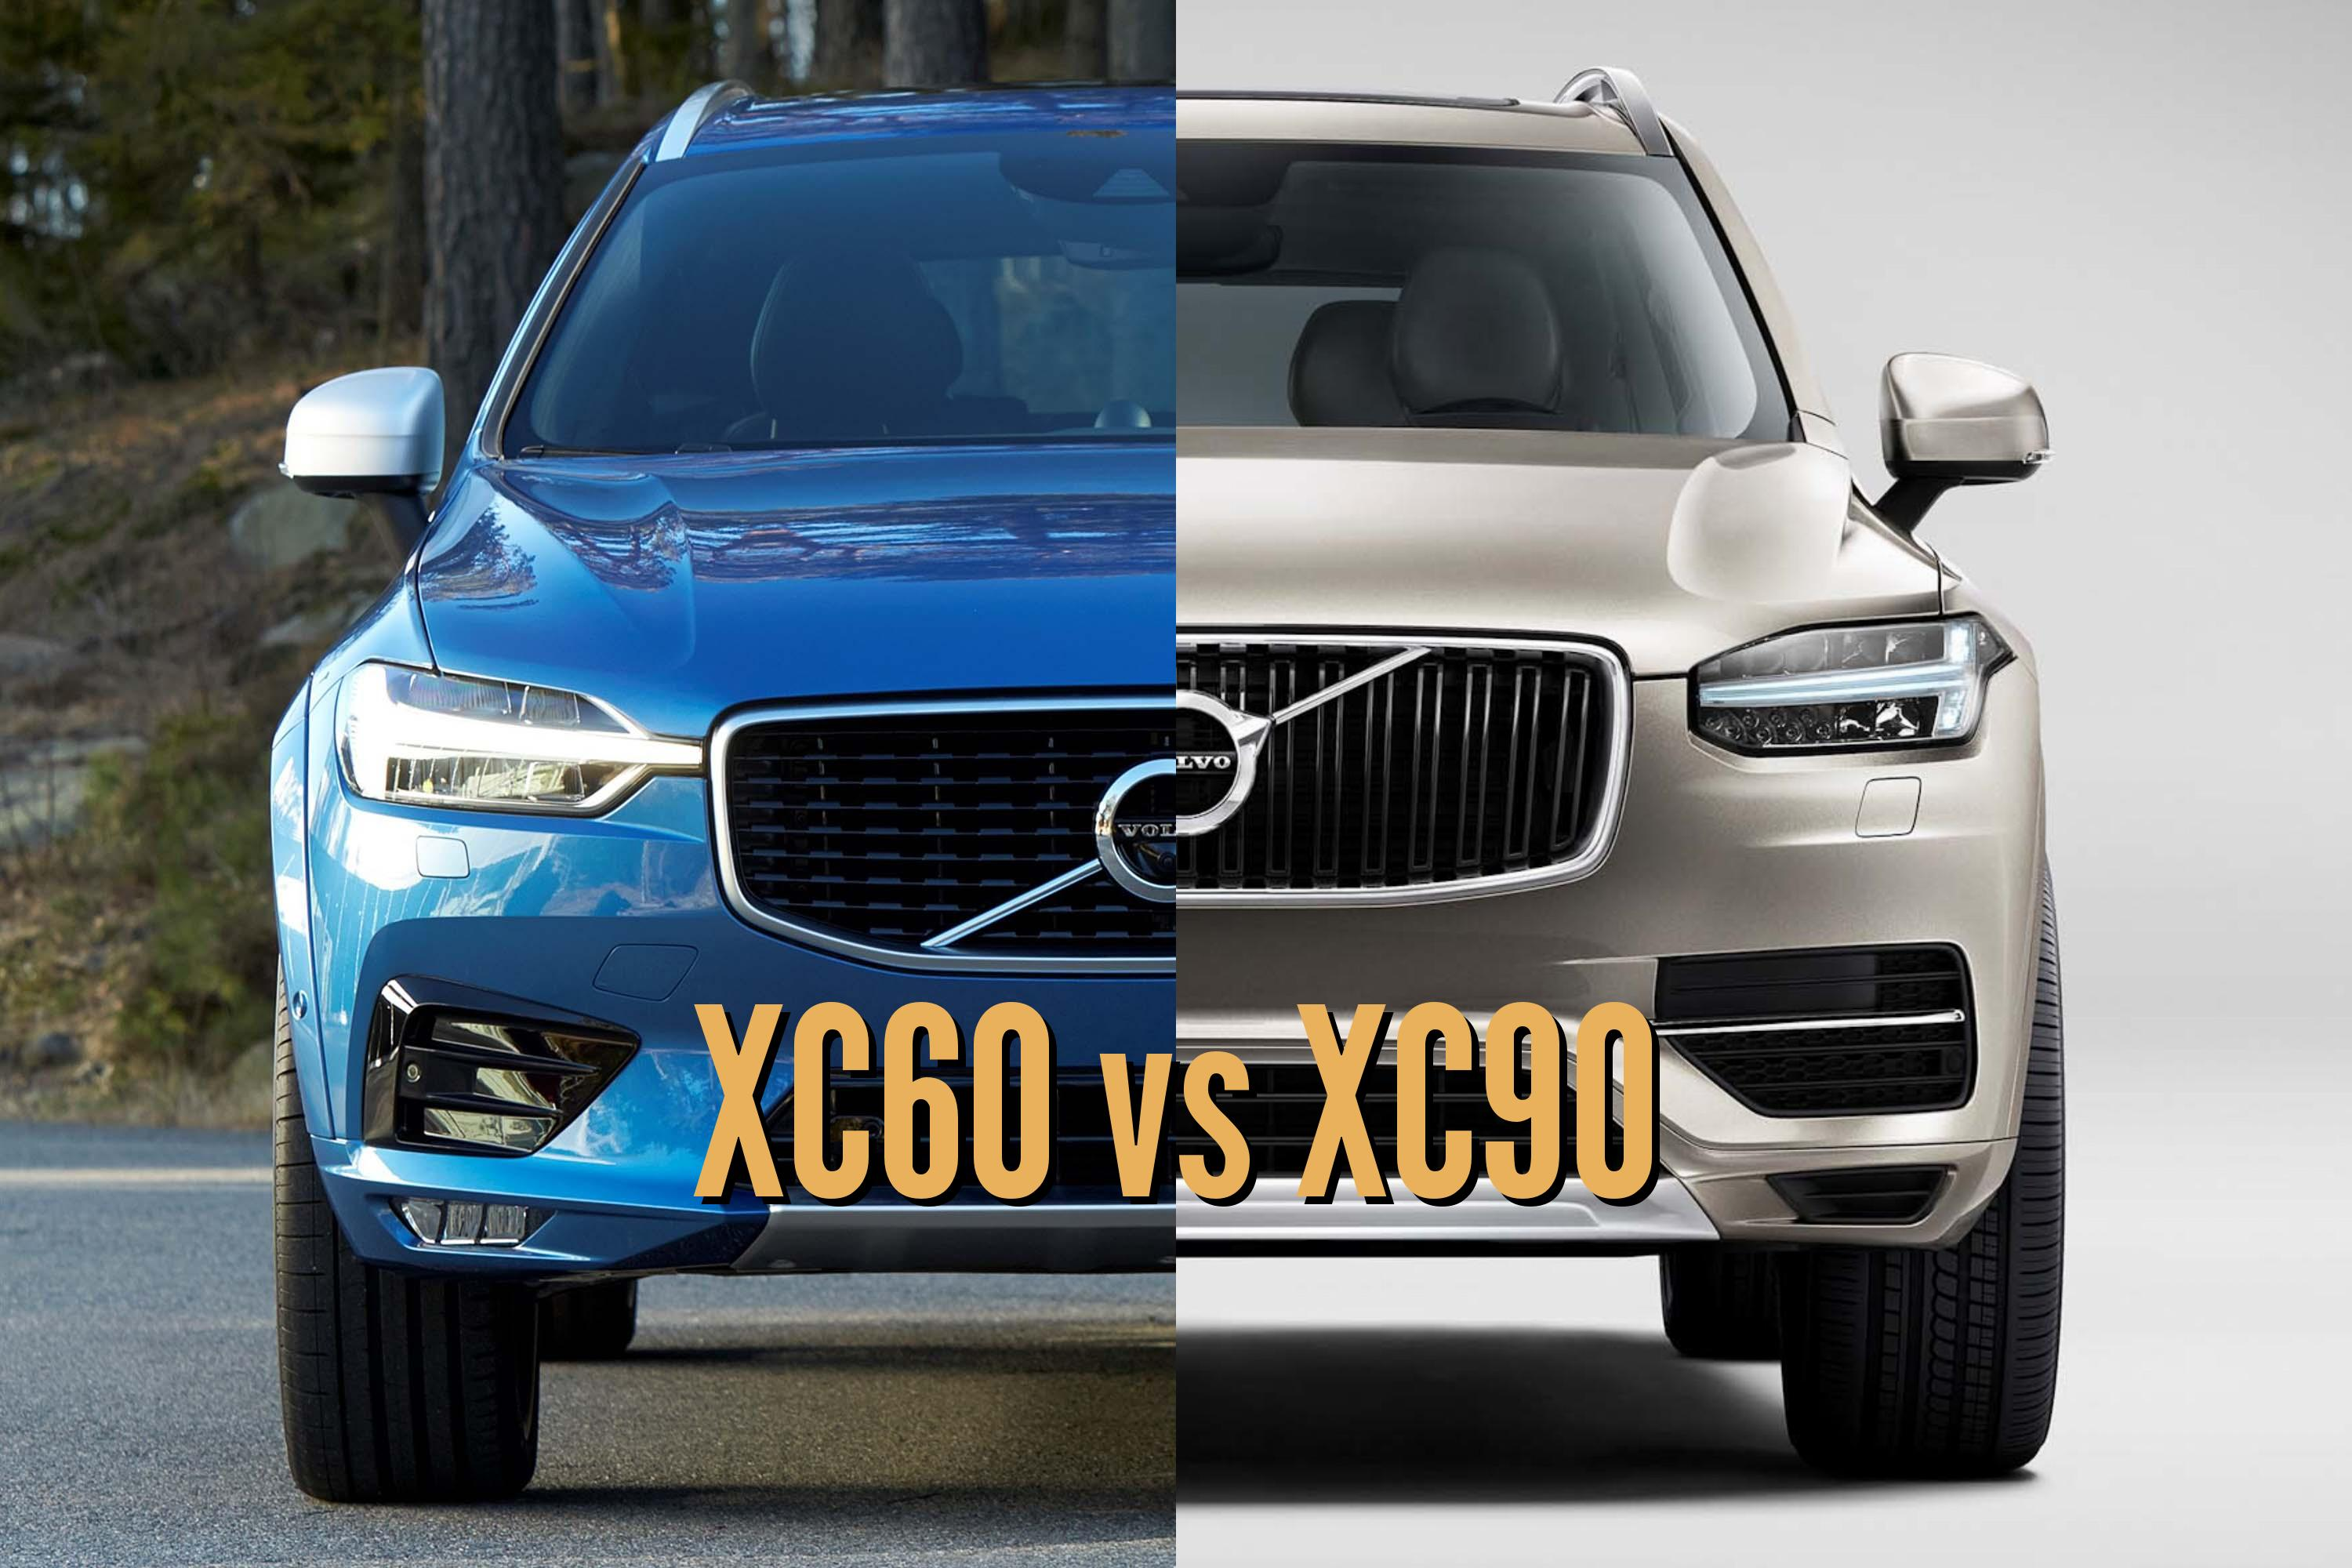 2018 Volvo XC60 vs 2017 XC90: Differences in photo comparison | Between the Axles